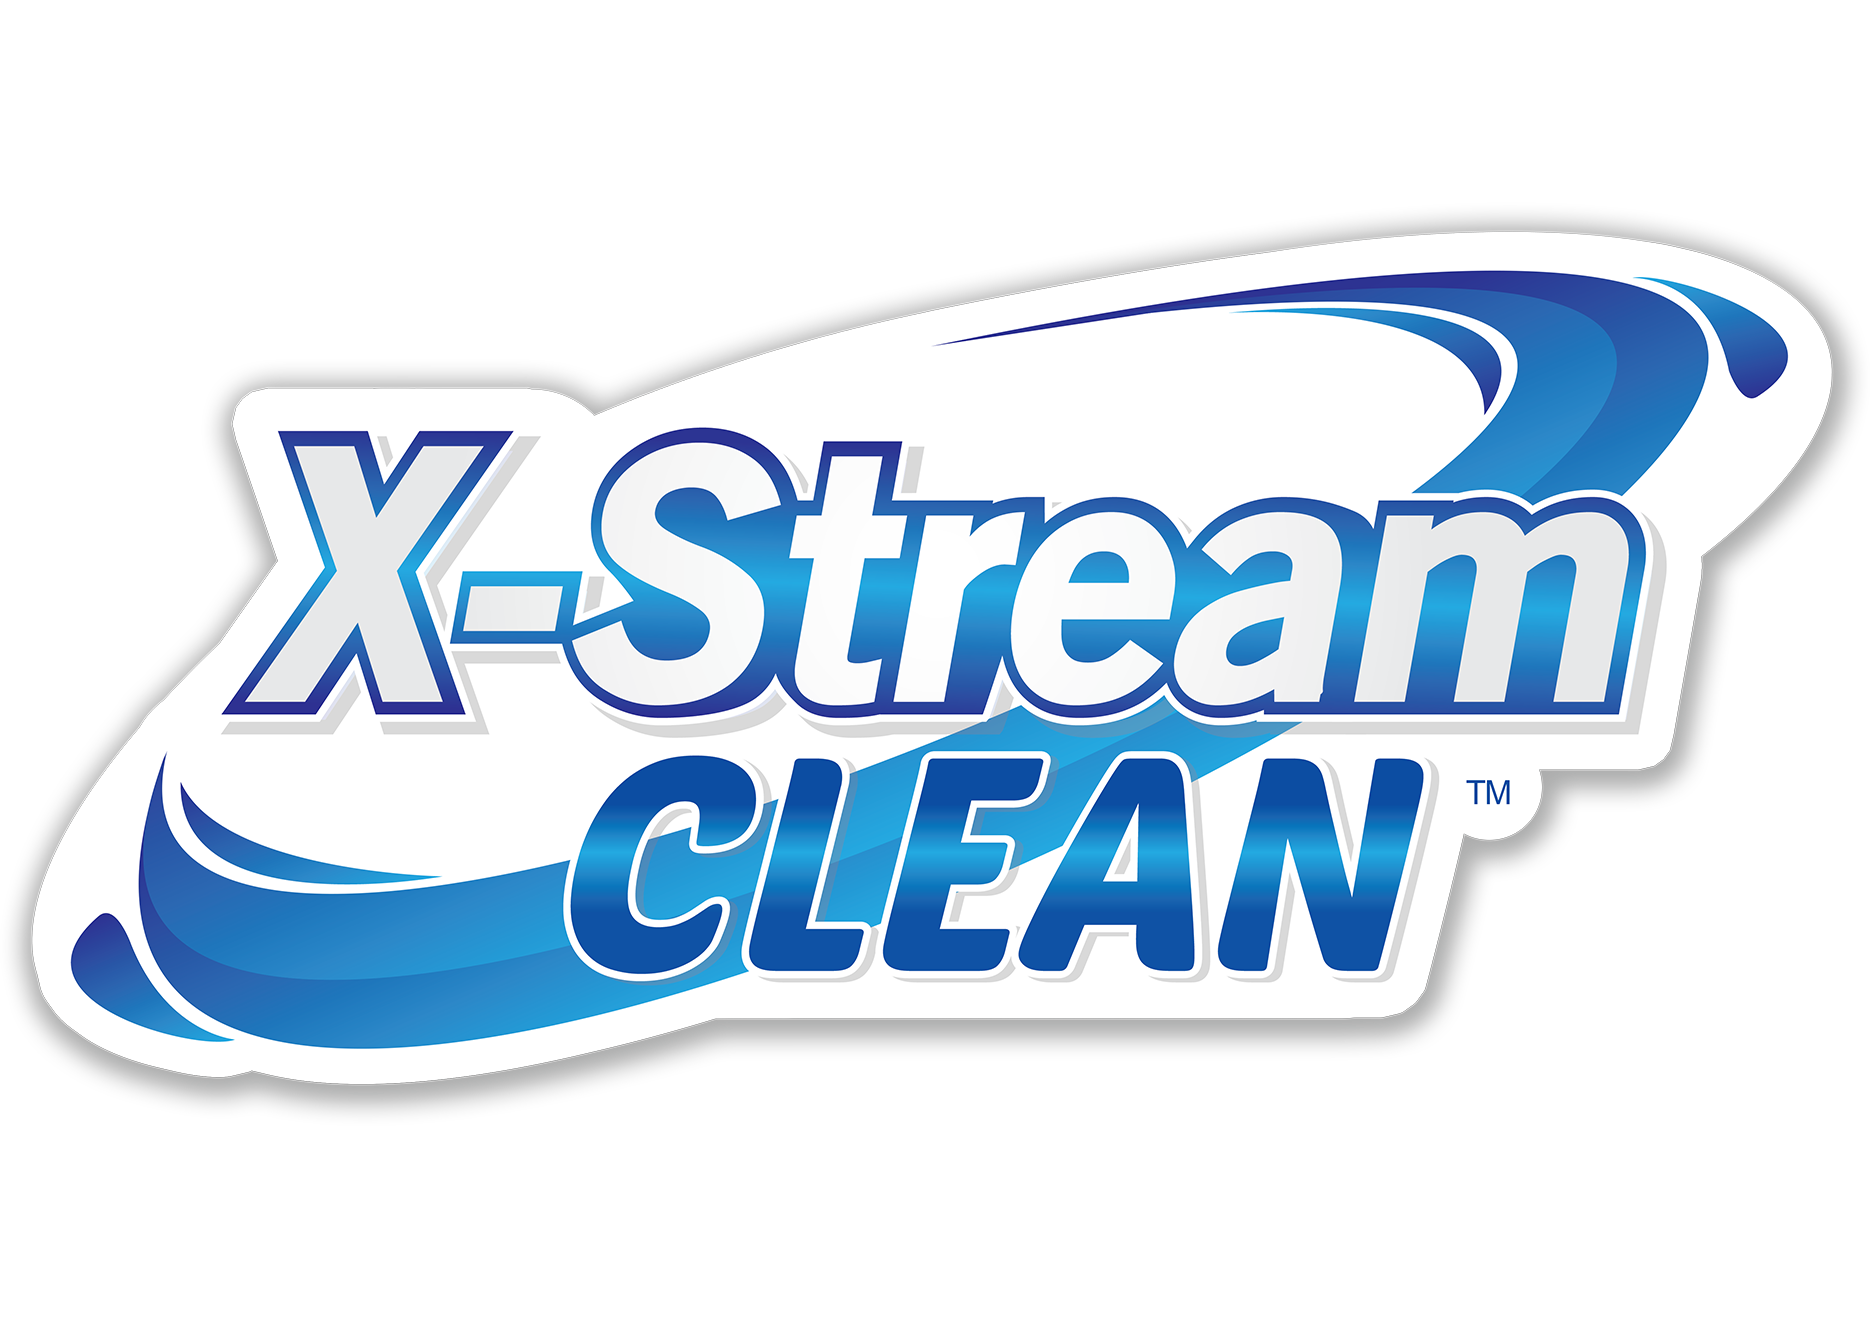 Official X-Stream Clean logo